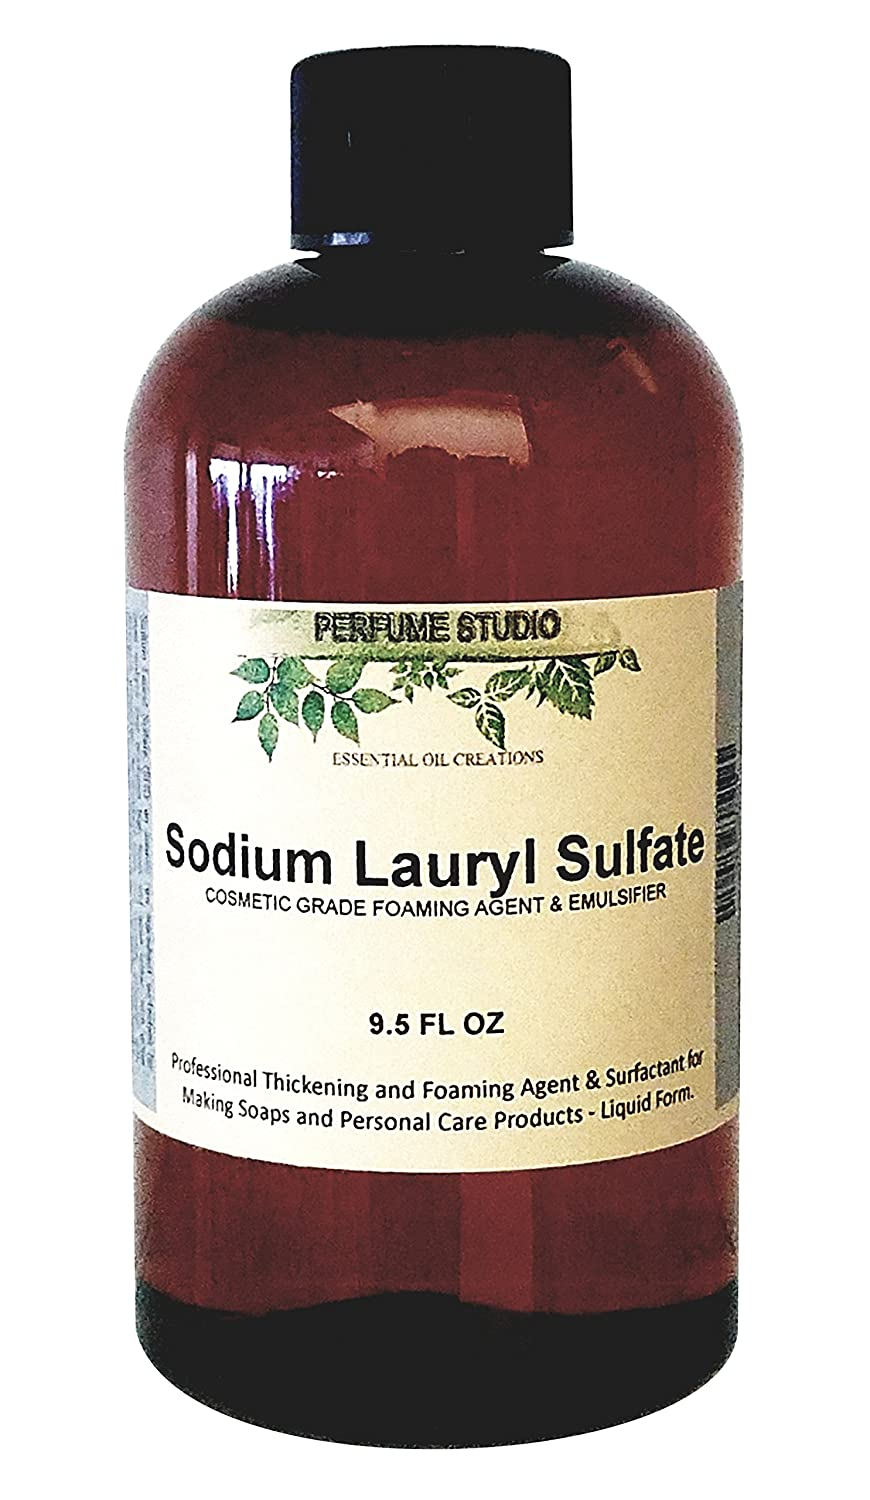 Perfume Studio Soap Making Supplies: Sodium Lauryl Sulfate (Liquid Form SLS); Personal Care Foaming Detergent Product and Professional Surfactant Raw Material – 9.5 OZ / 280 ML SLS9OZPET